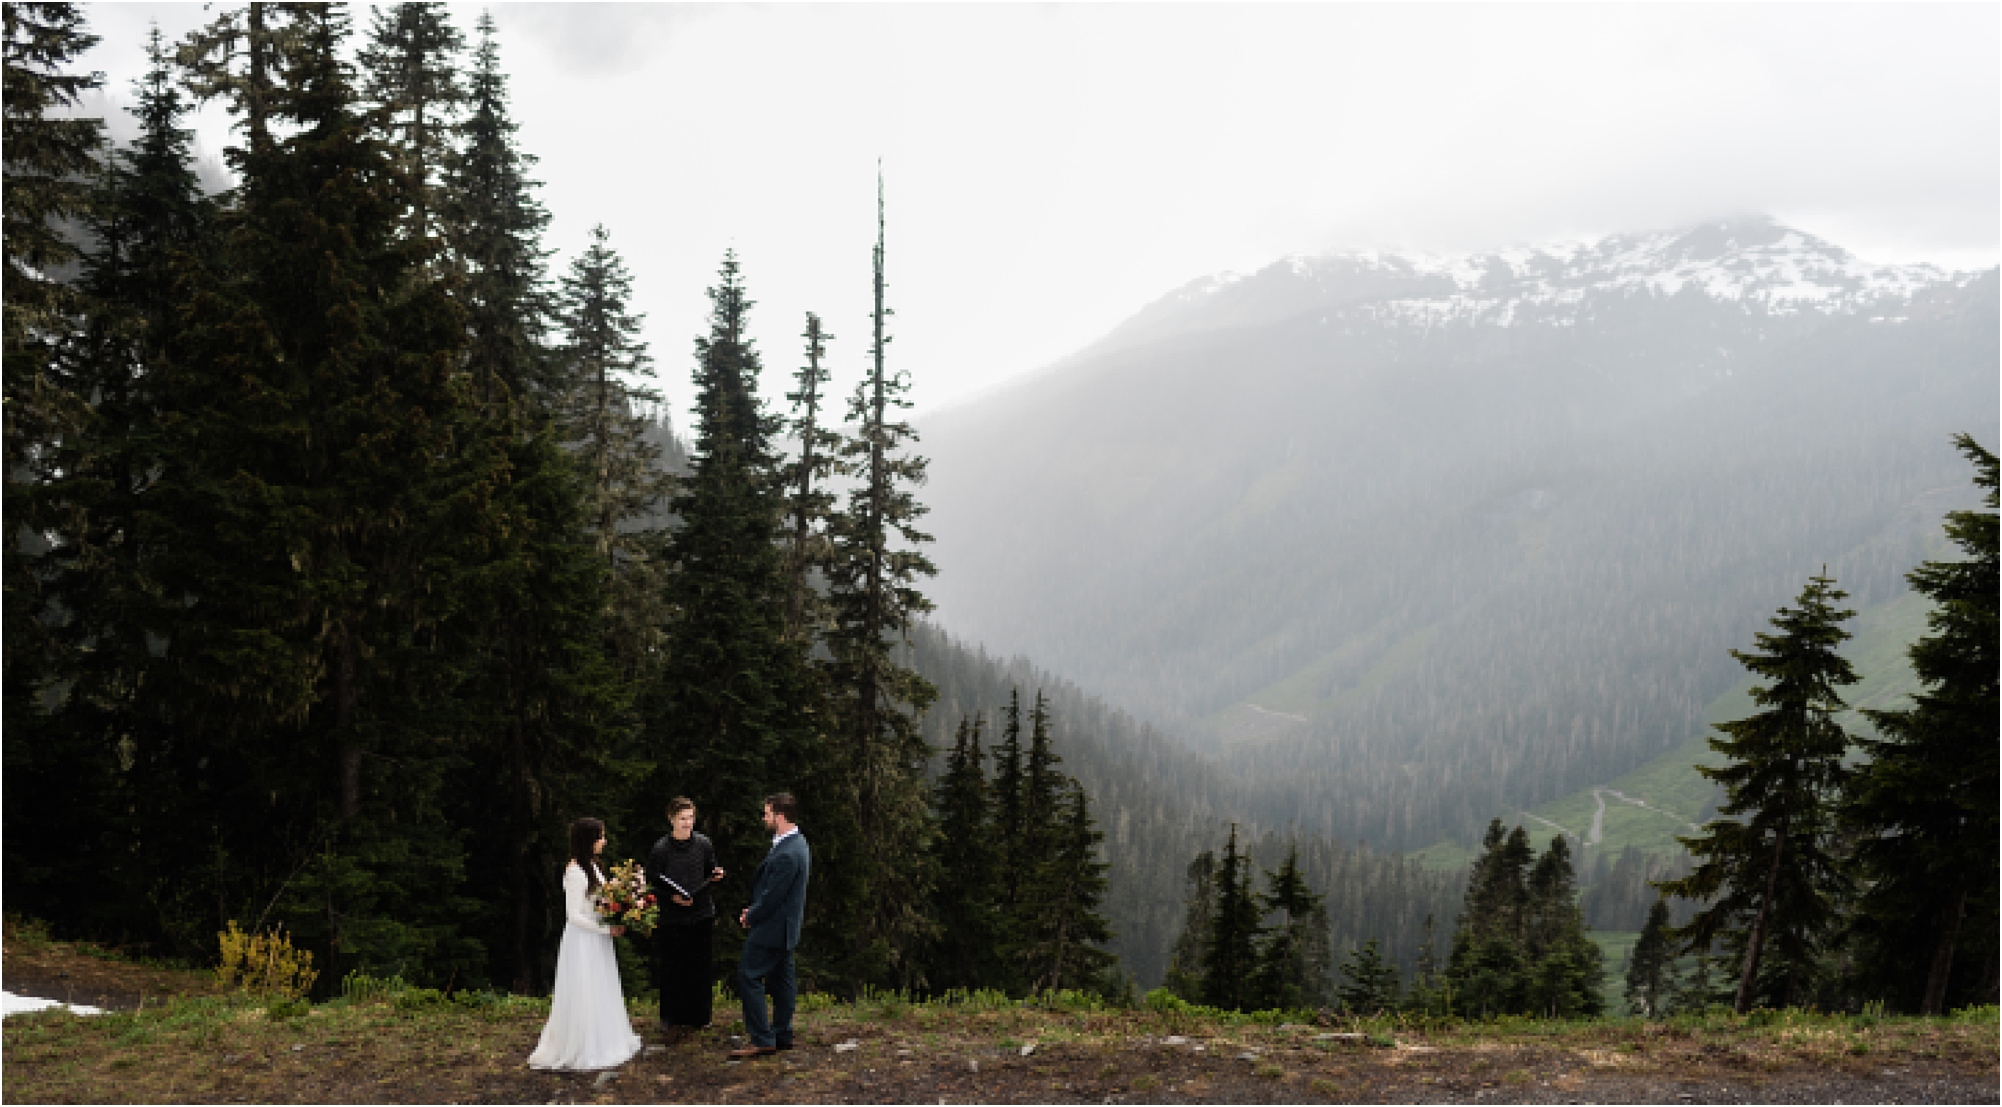 Elopement Ceremony in the mountains surrounding Mt. Baker. Image by Forthright Photo, Seattle Elopement Photographers.